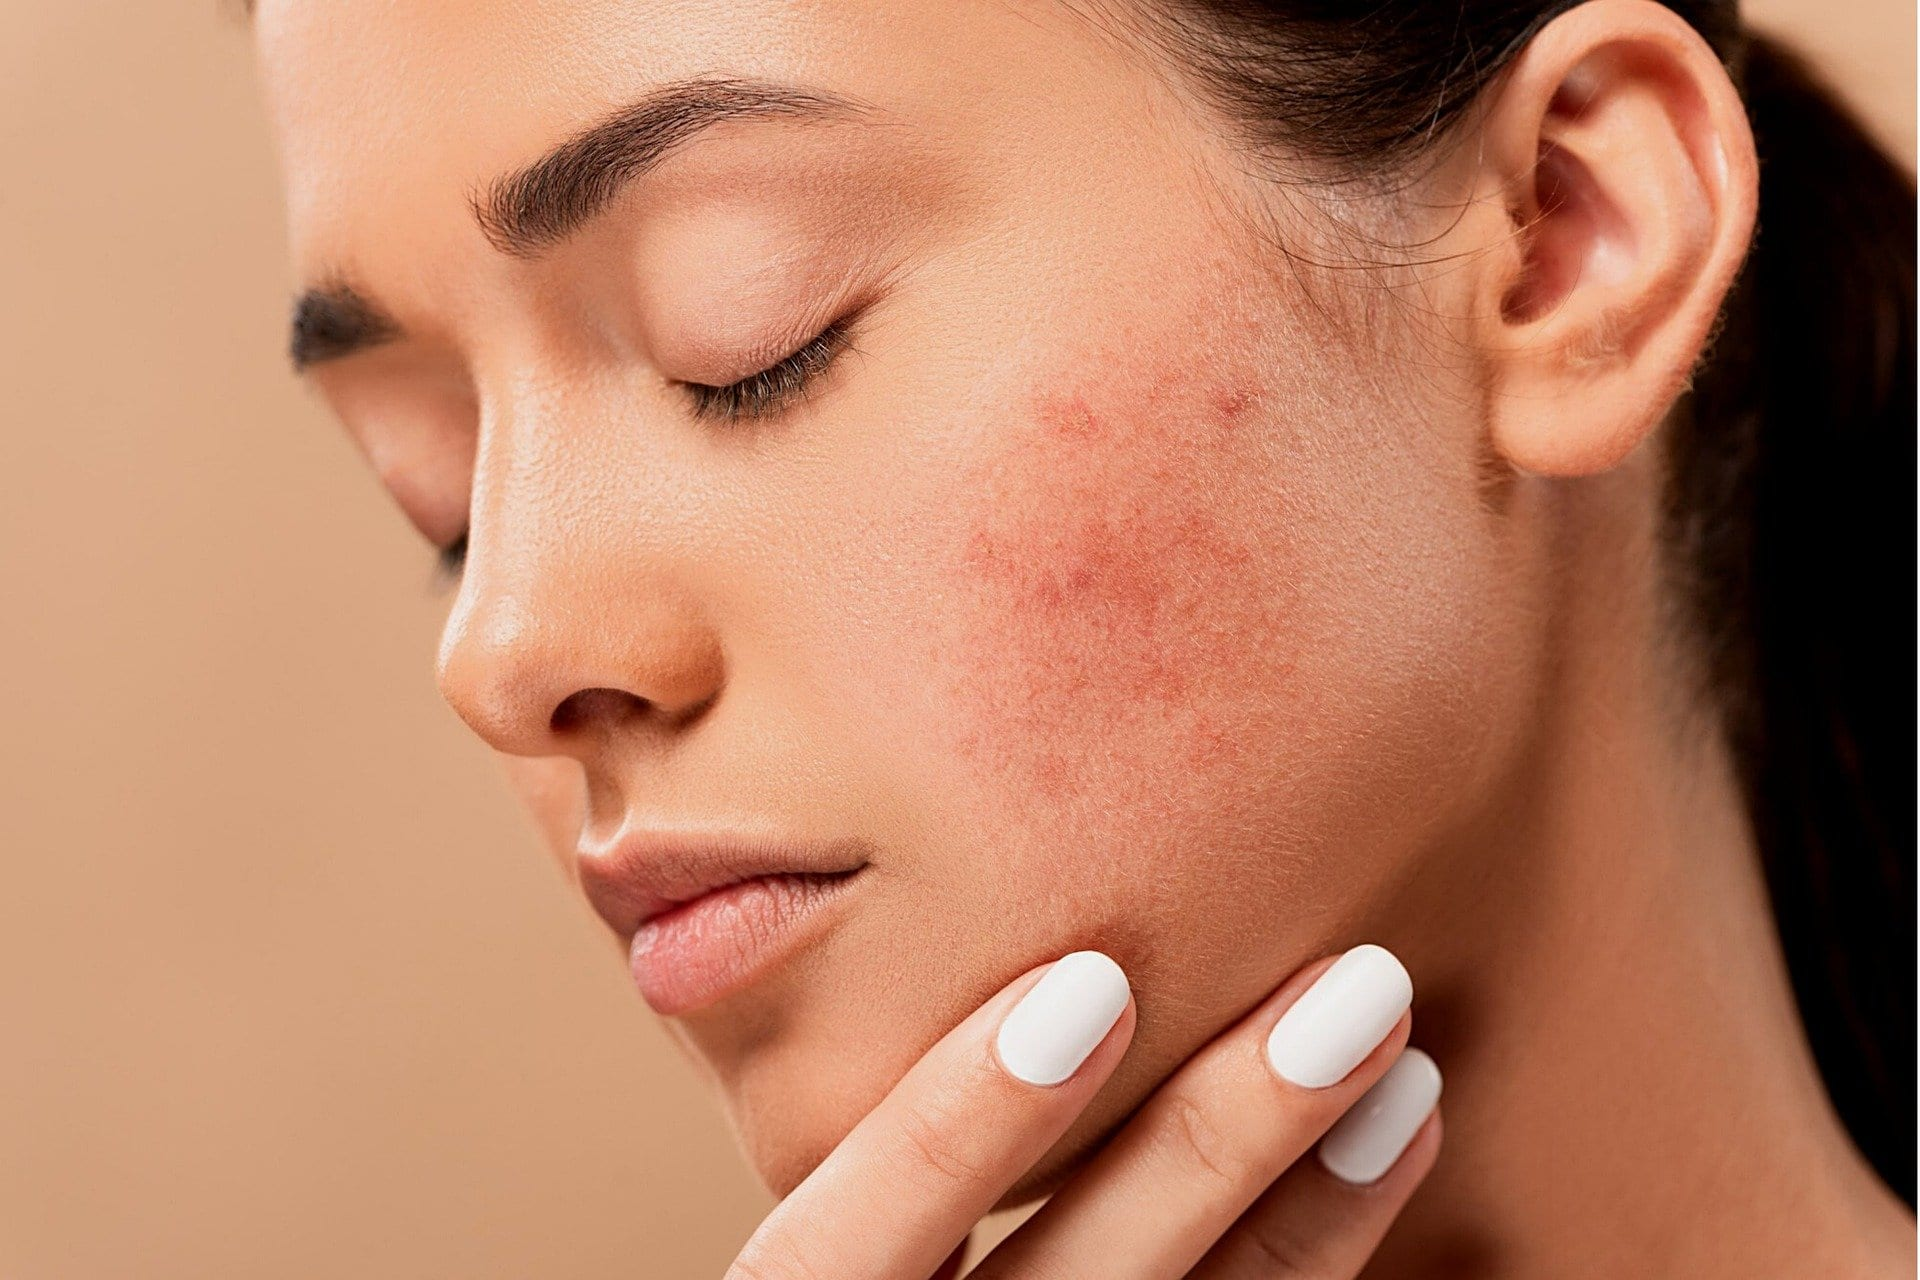 Learn about the differences between fungal acne vs closed comedones